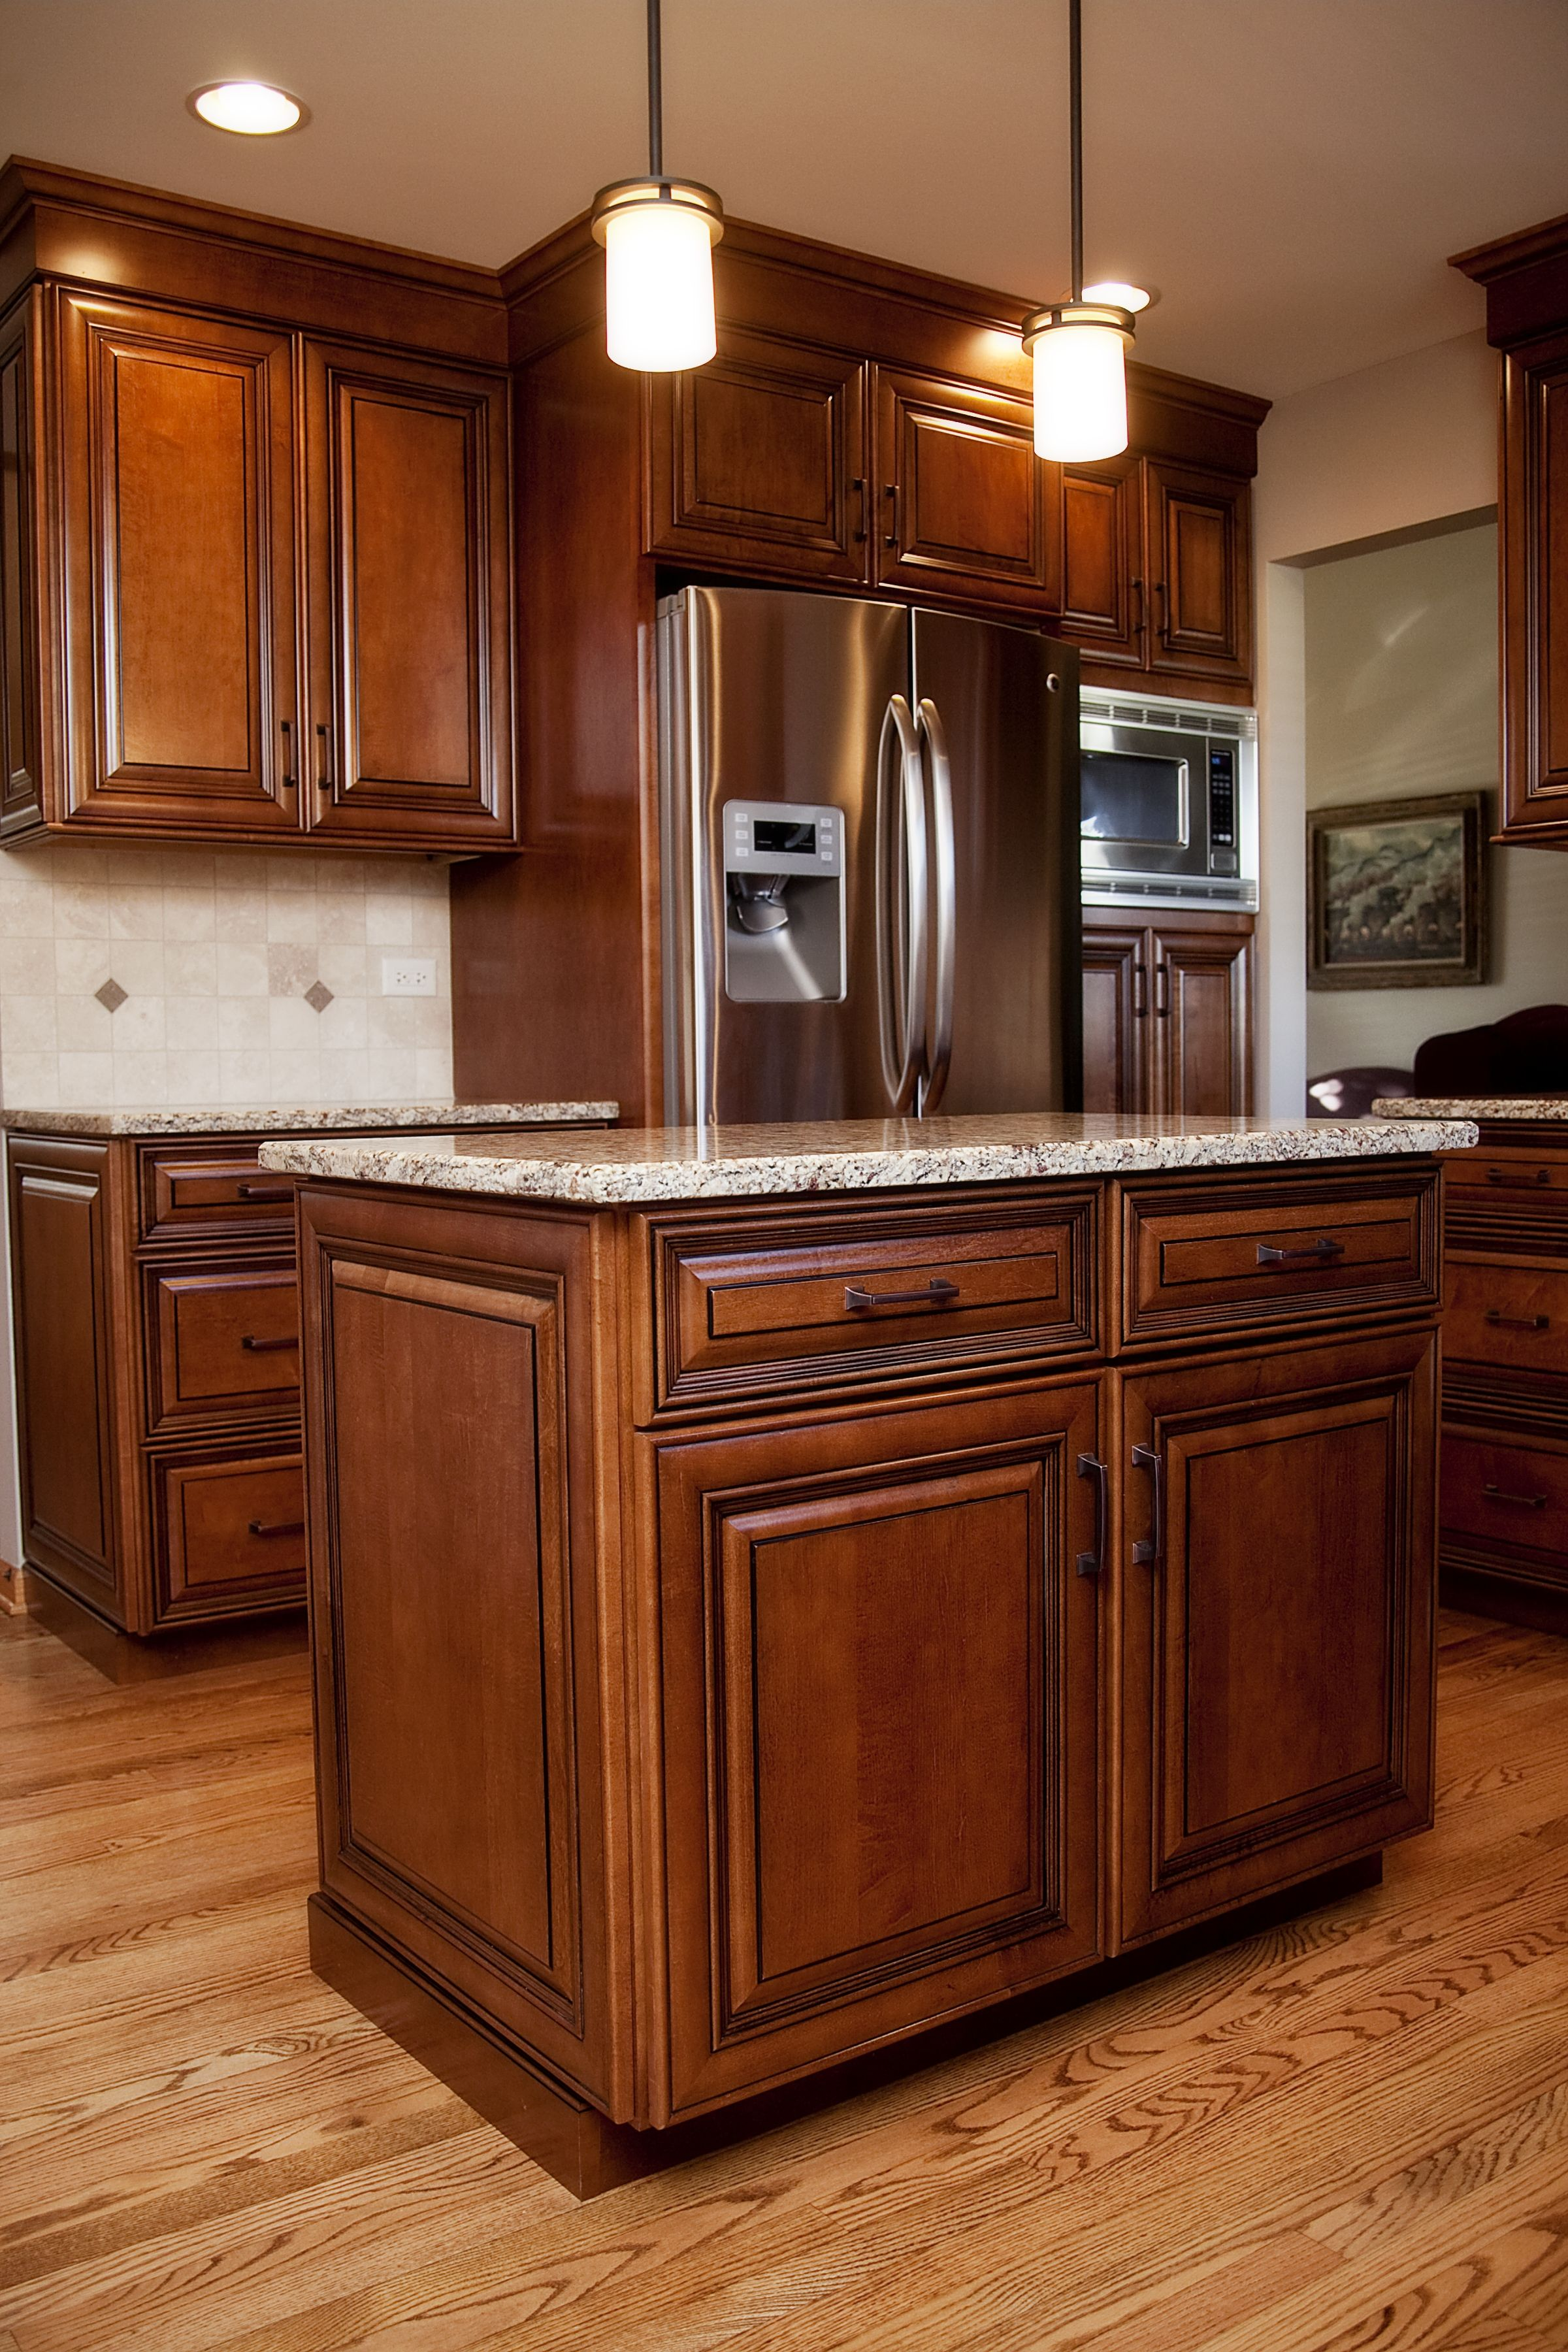 Black Glaze On Kitchen Cabinets | Kitchen Cabinets | Pinterest ...